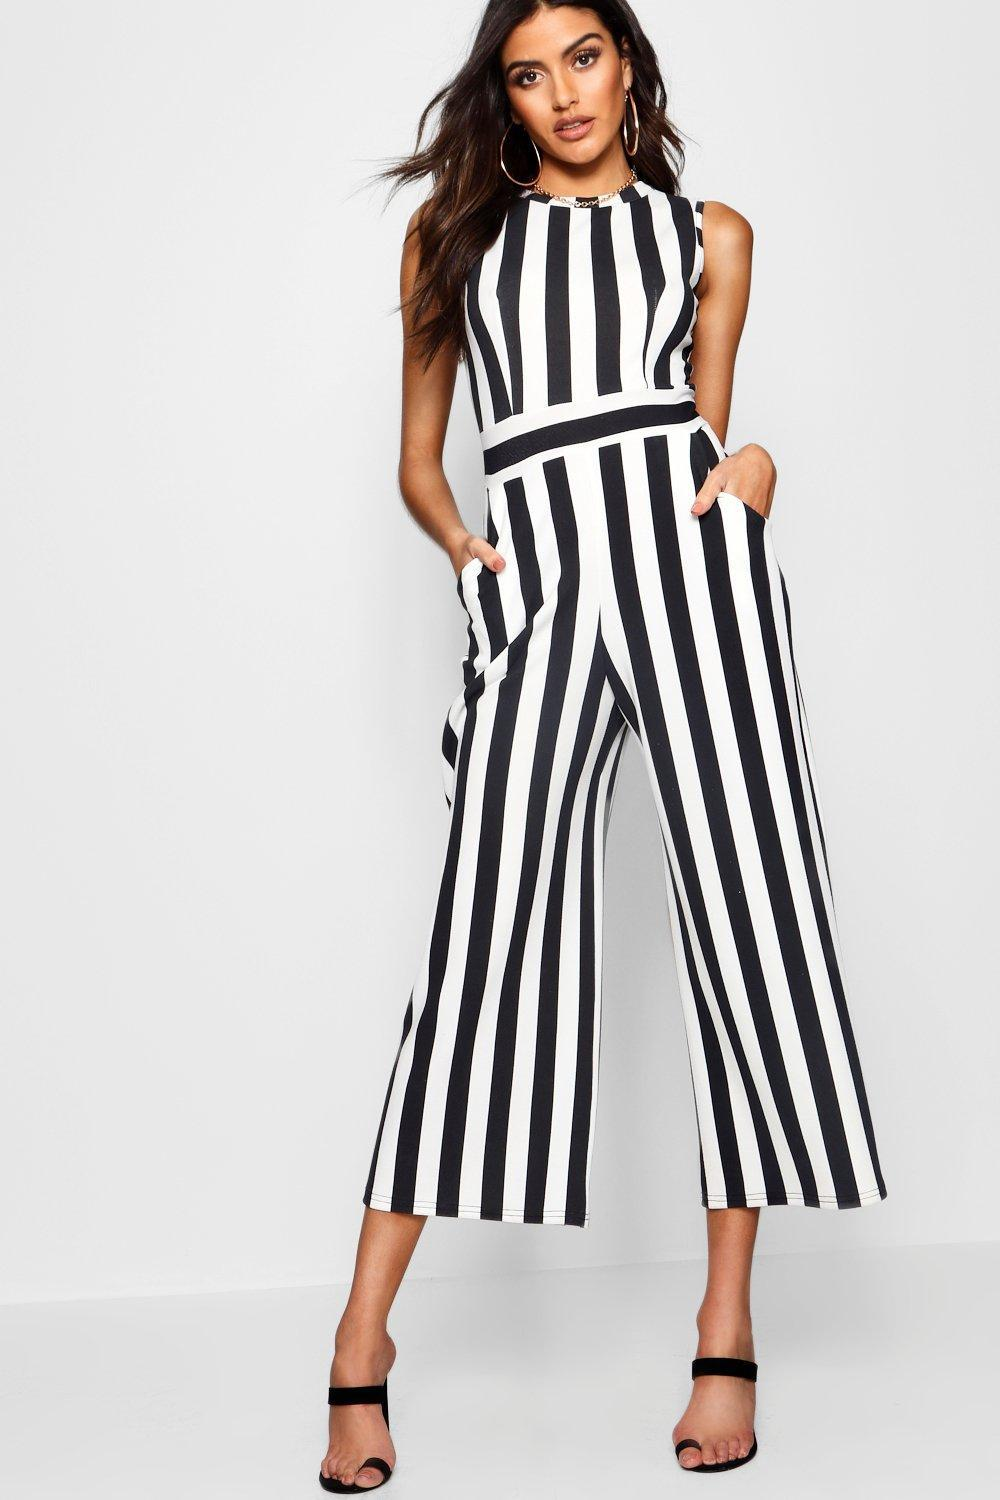 Boohoo Porcelain Sqaure Neck Flare Jumpsuit Low Price Outlet For Cheap Cheap Sale New Arrival waGh72e